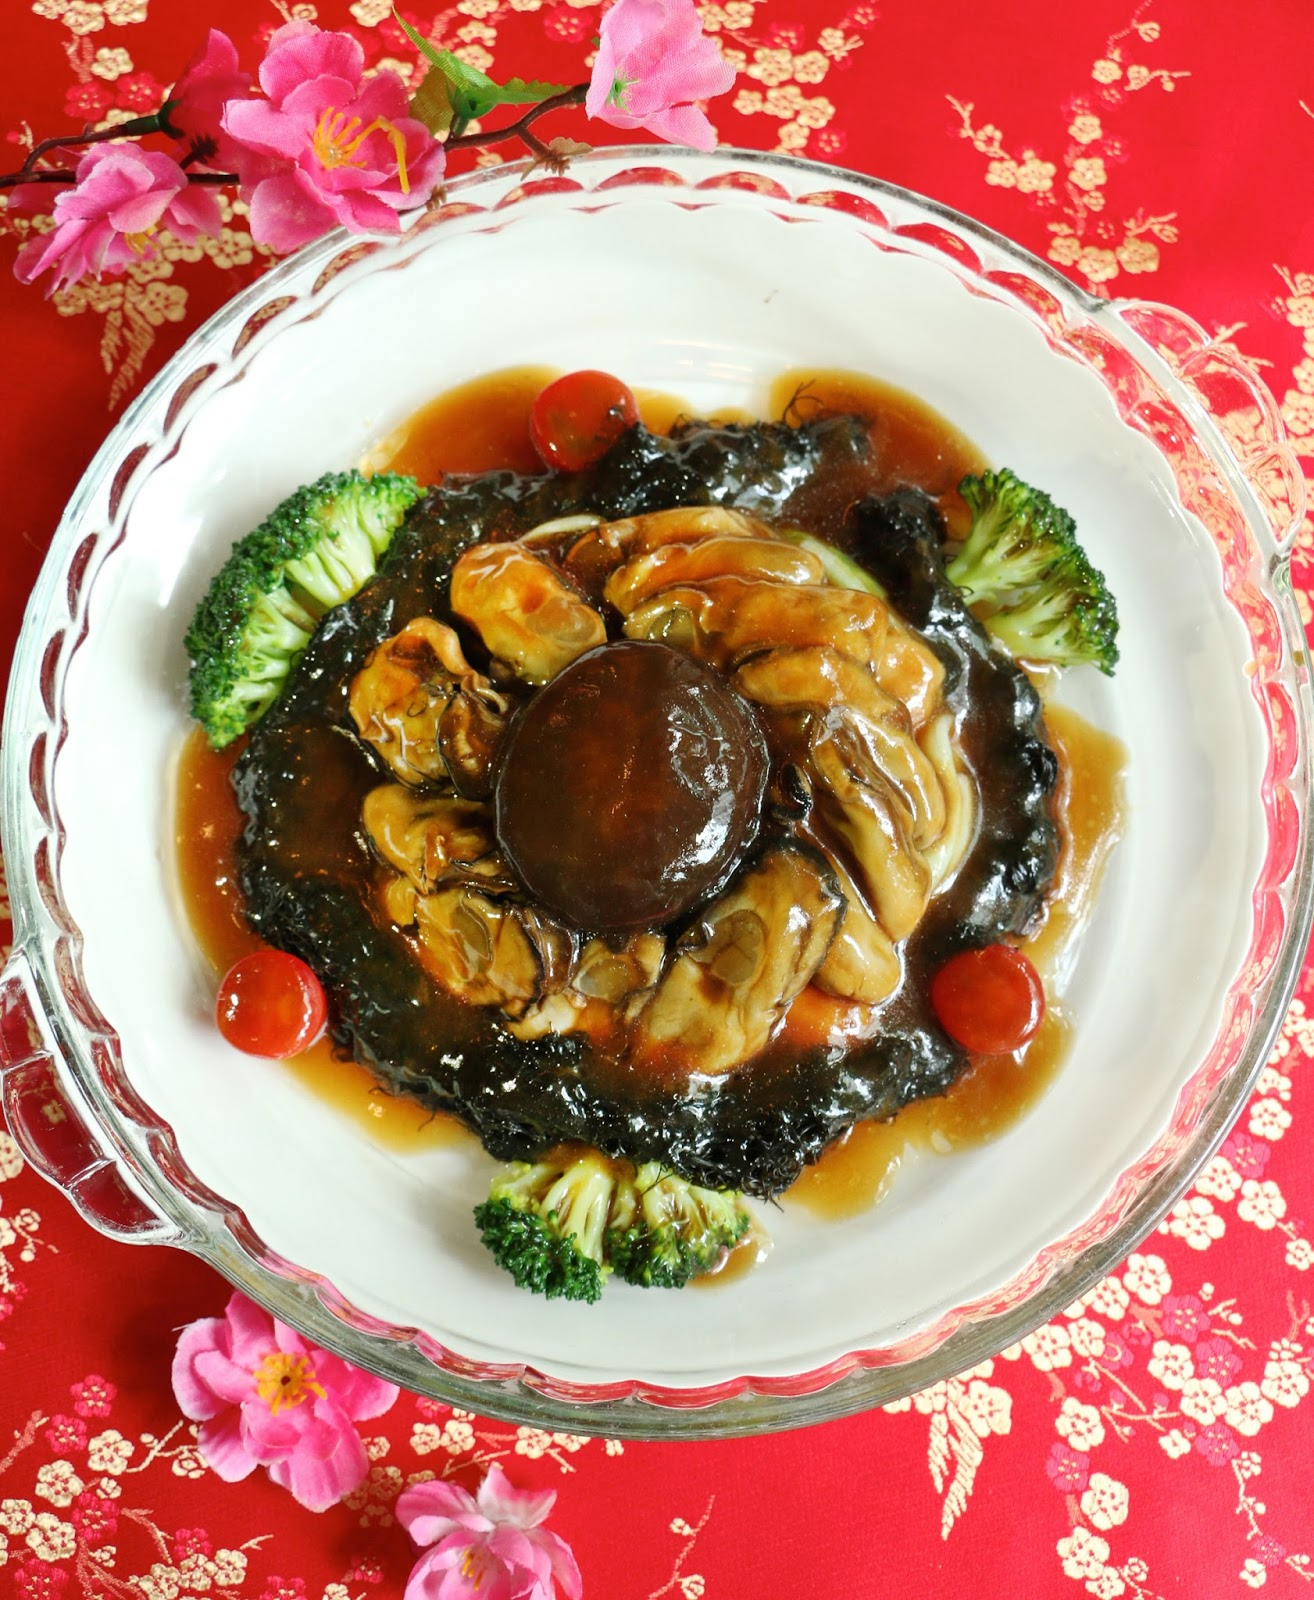 Stewed sun-dried oysters with sea moss and garden greens in oyster sauce (蚝豉发菜, Háo shì fà cài).